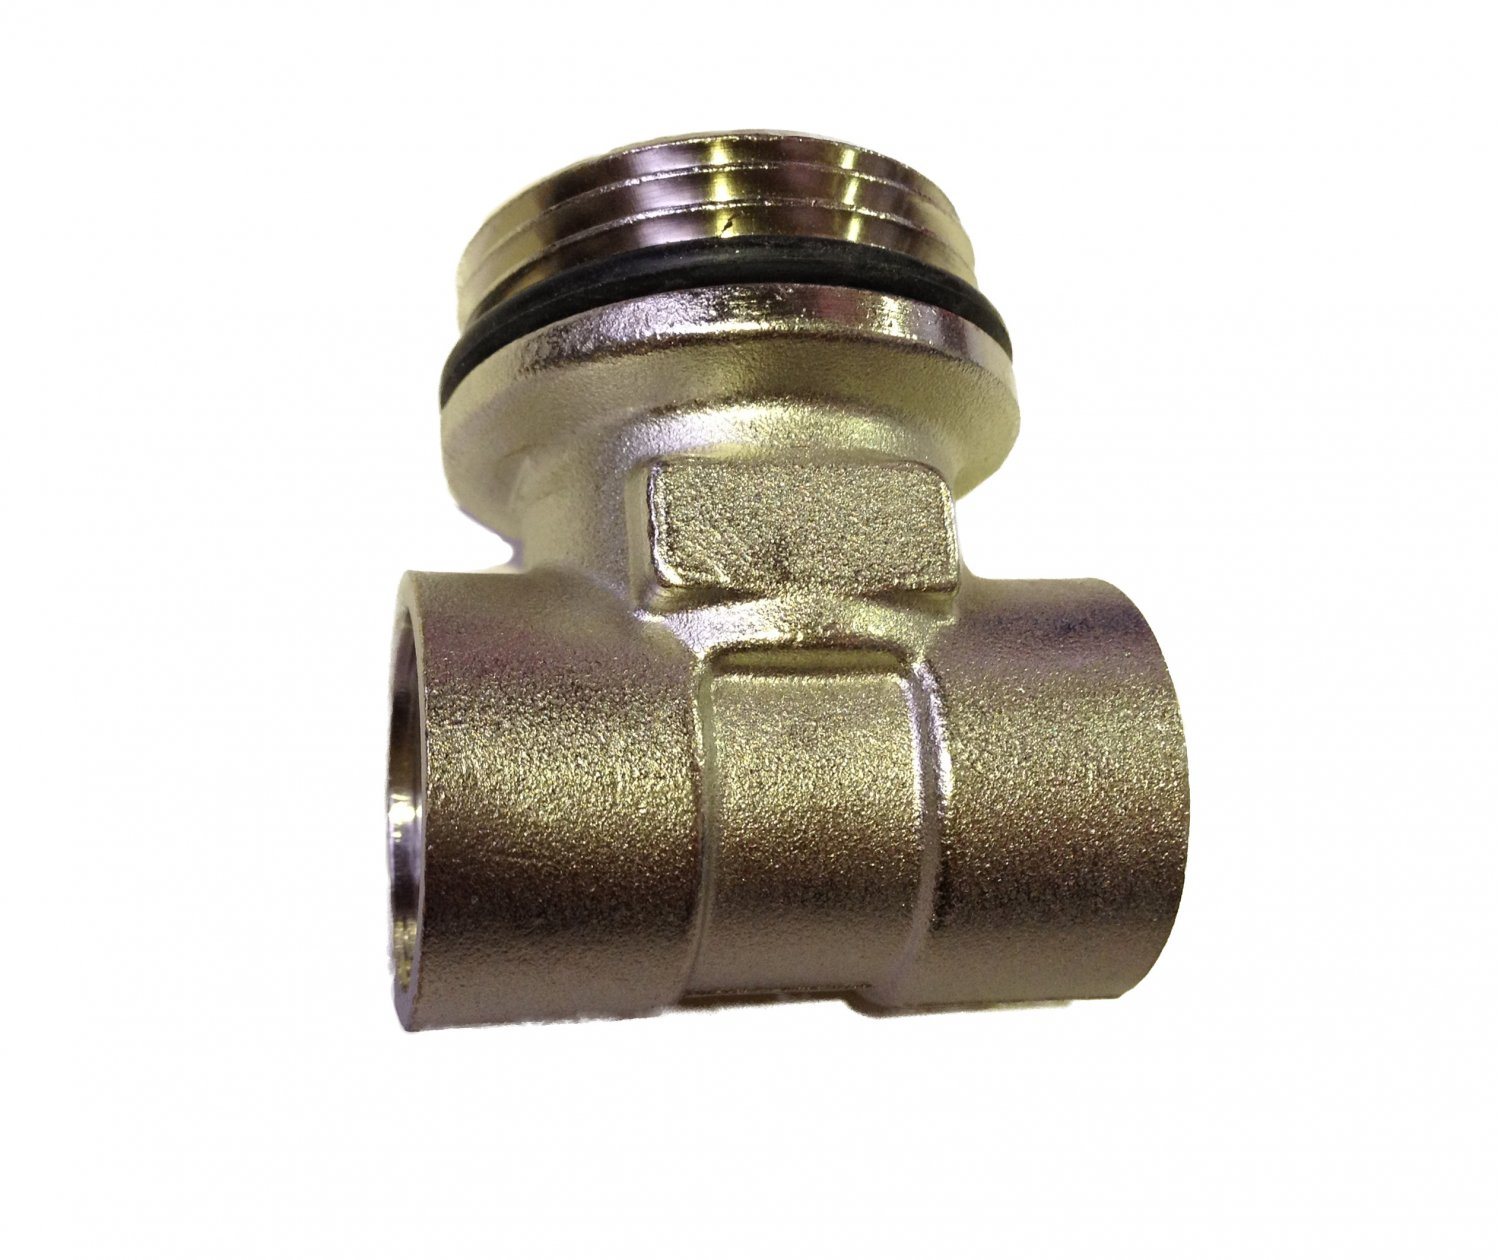 Male End Tee 1/2F x 4/4M x 1/2F Nickel Plated